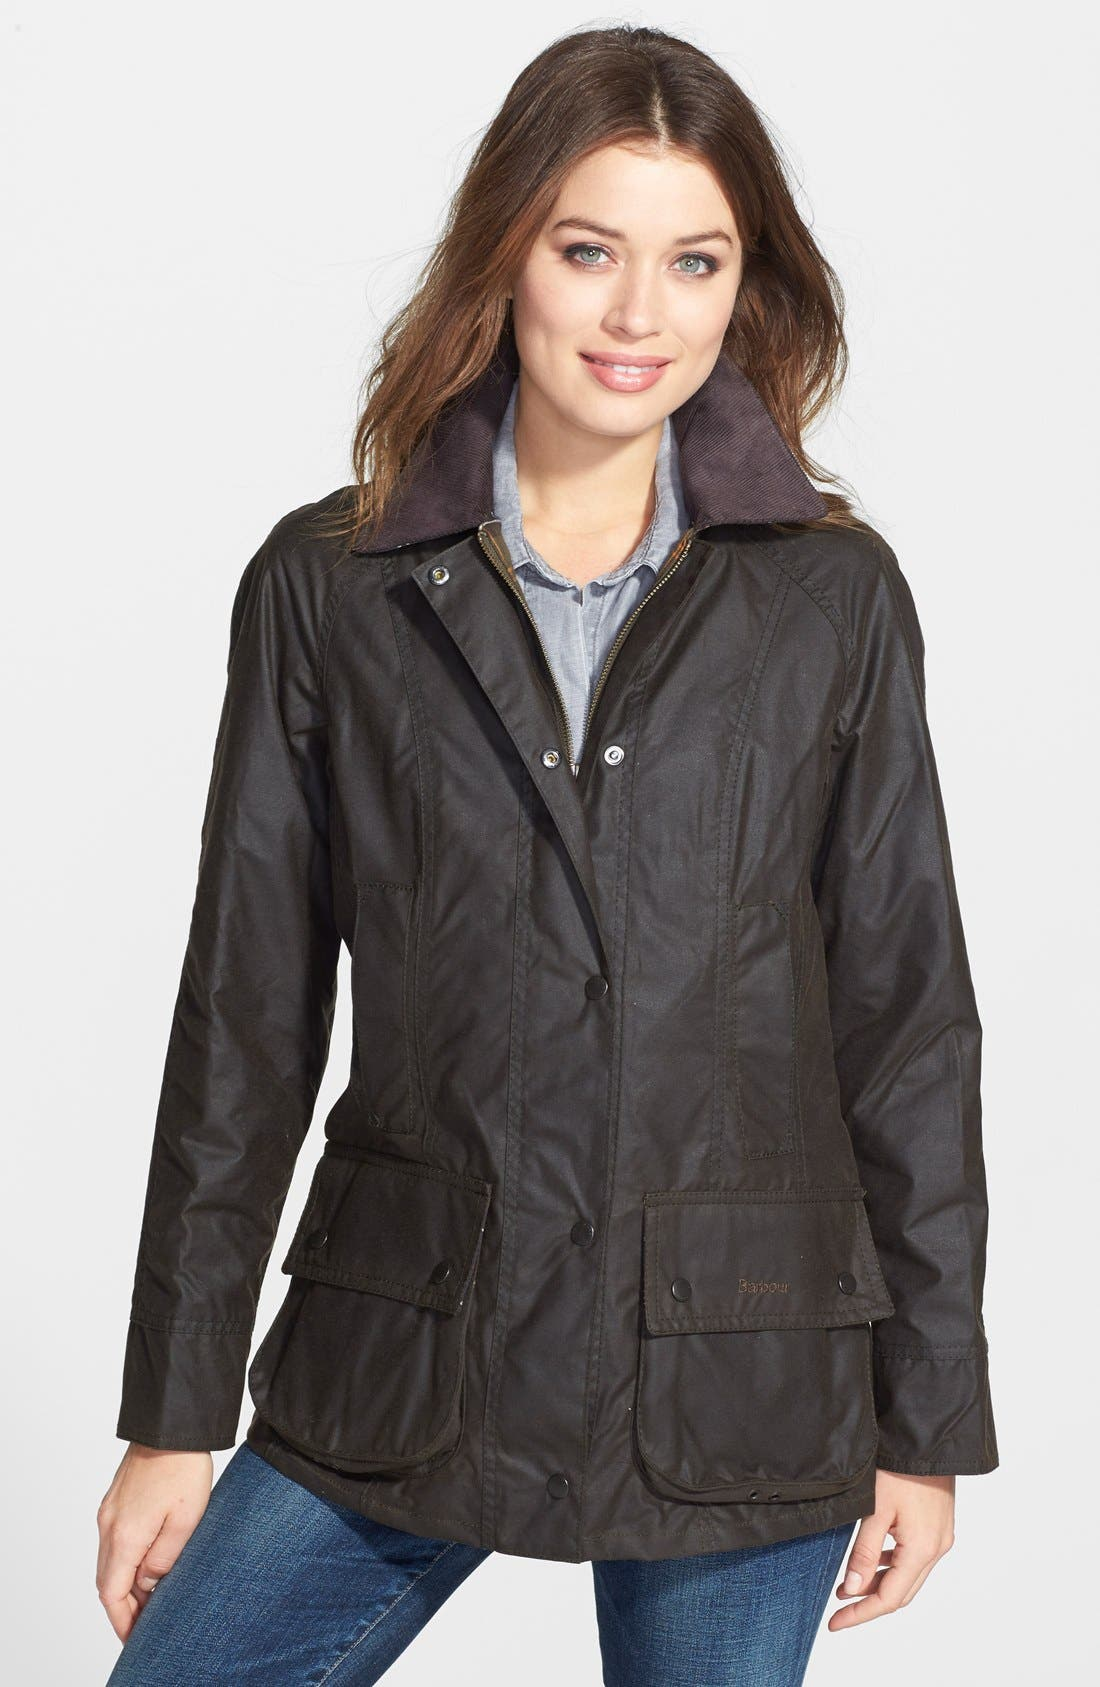 Main Image - Barbour Beadnell Waxed Cotton Jacket